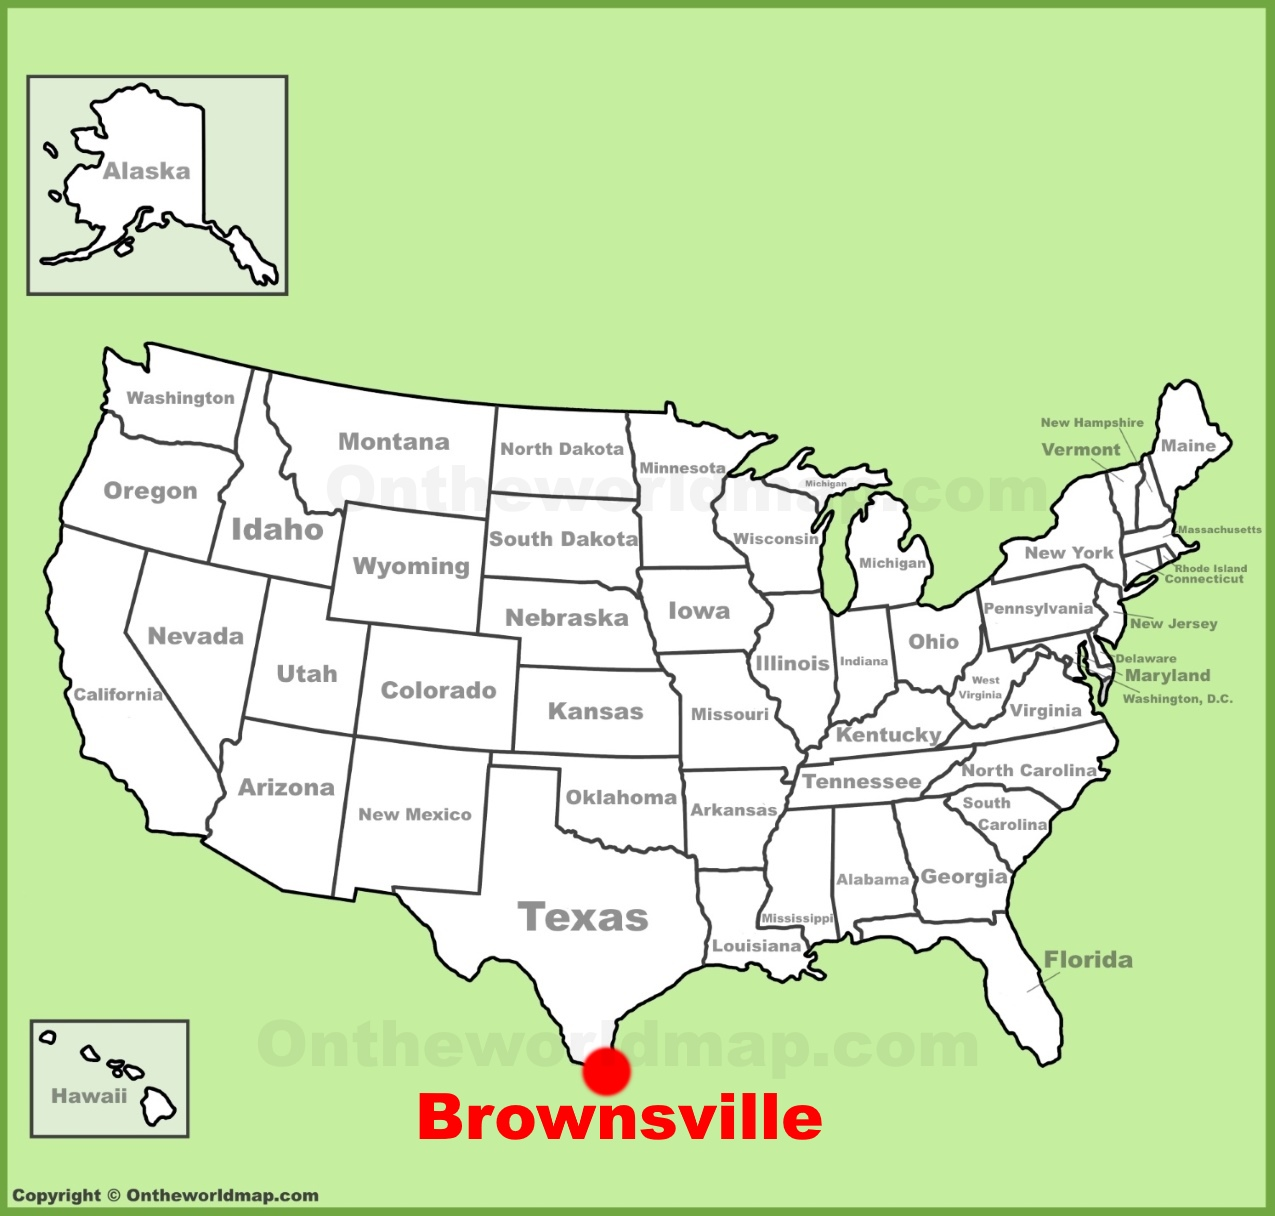 Brownsville location on the US Map